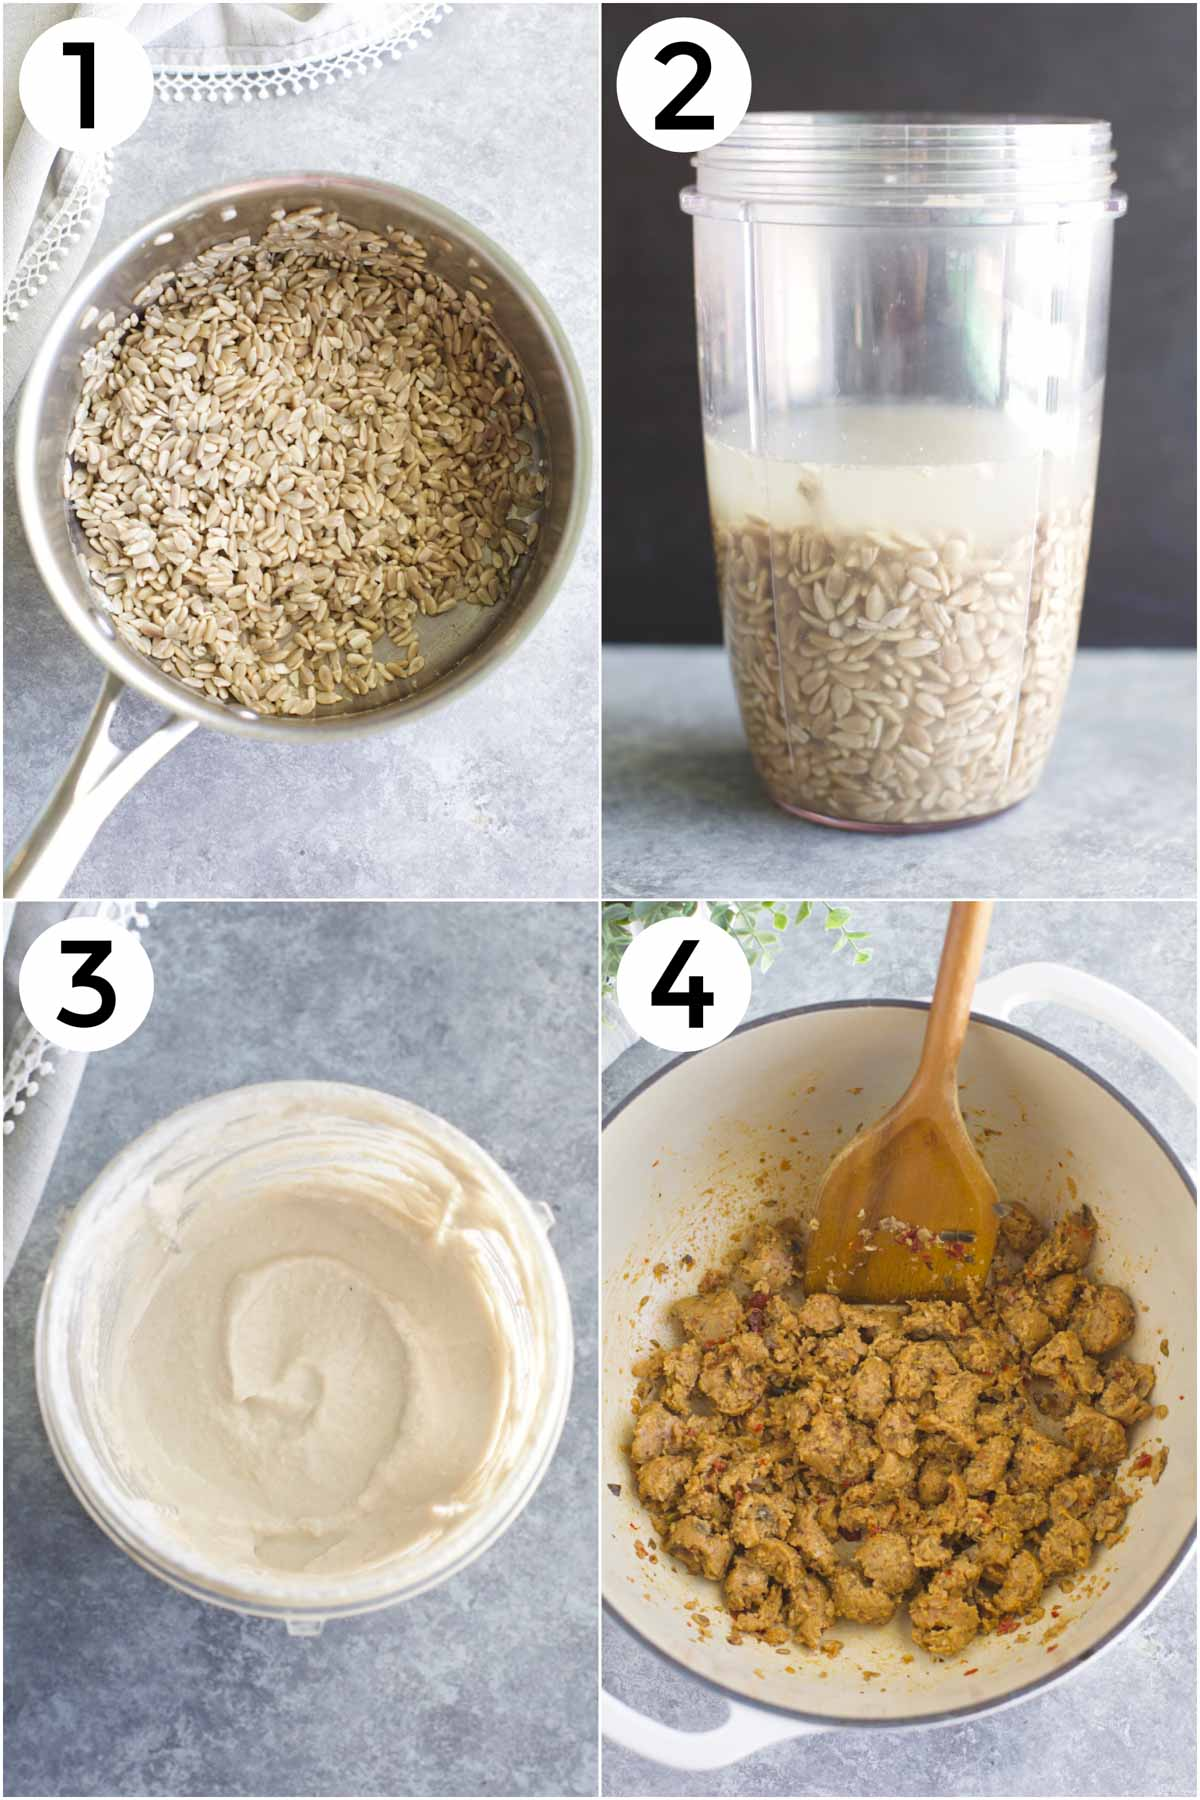 A collage of 4 photos showing how to make sunflower cream and to brown meatless sausage.